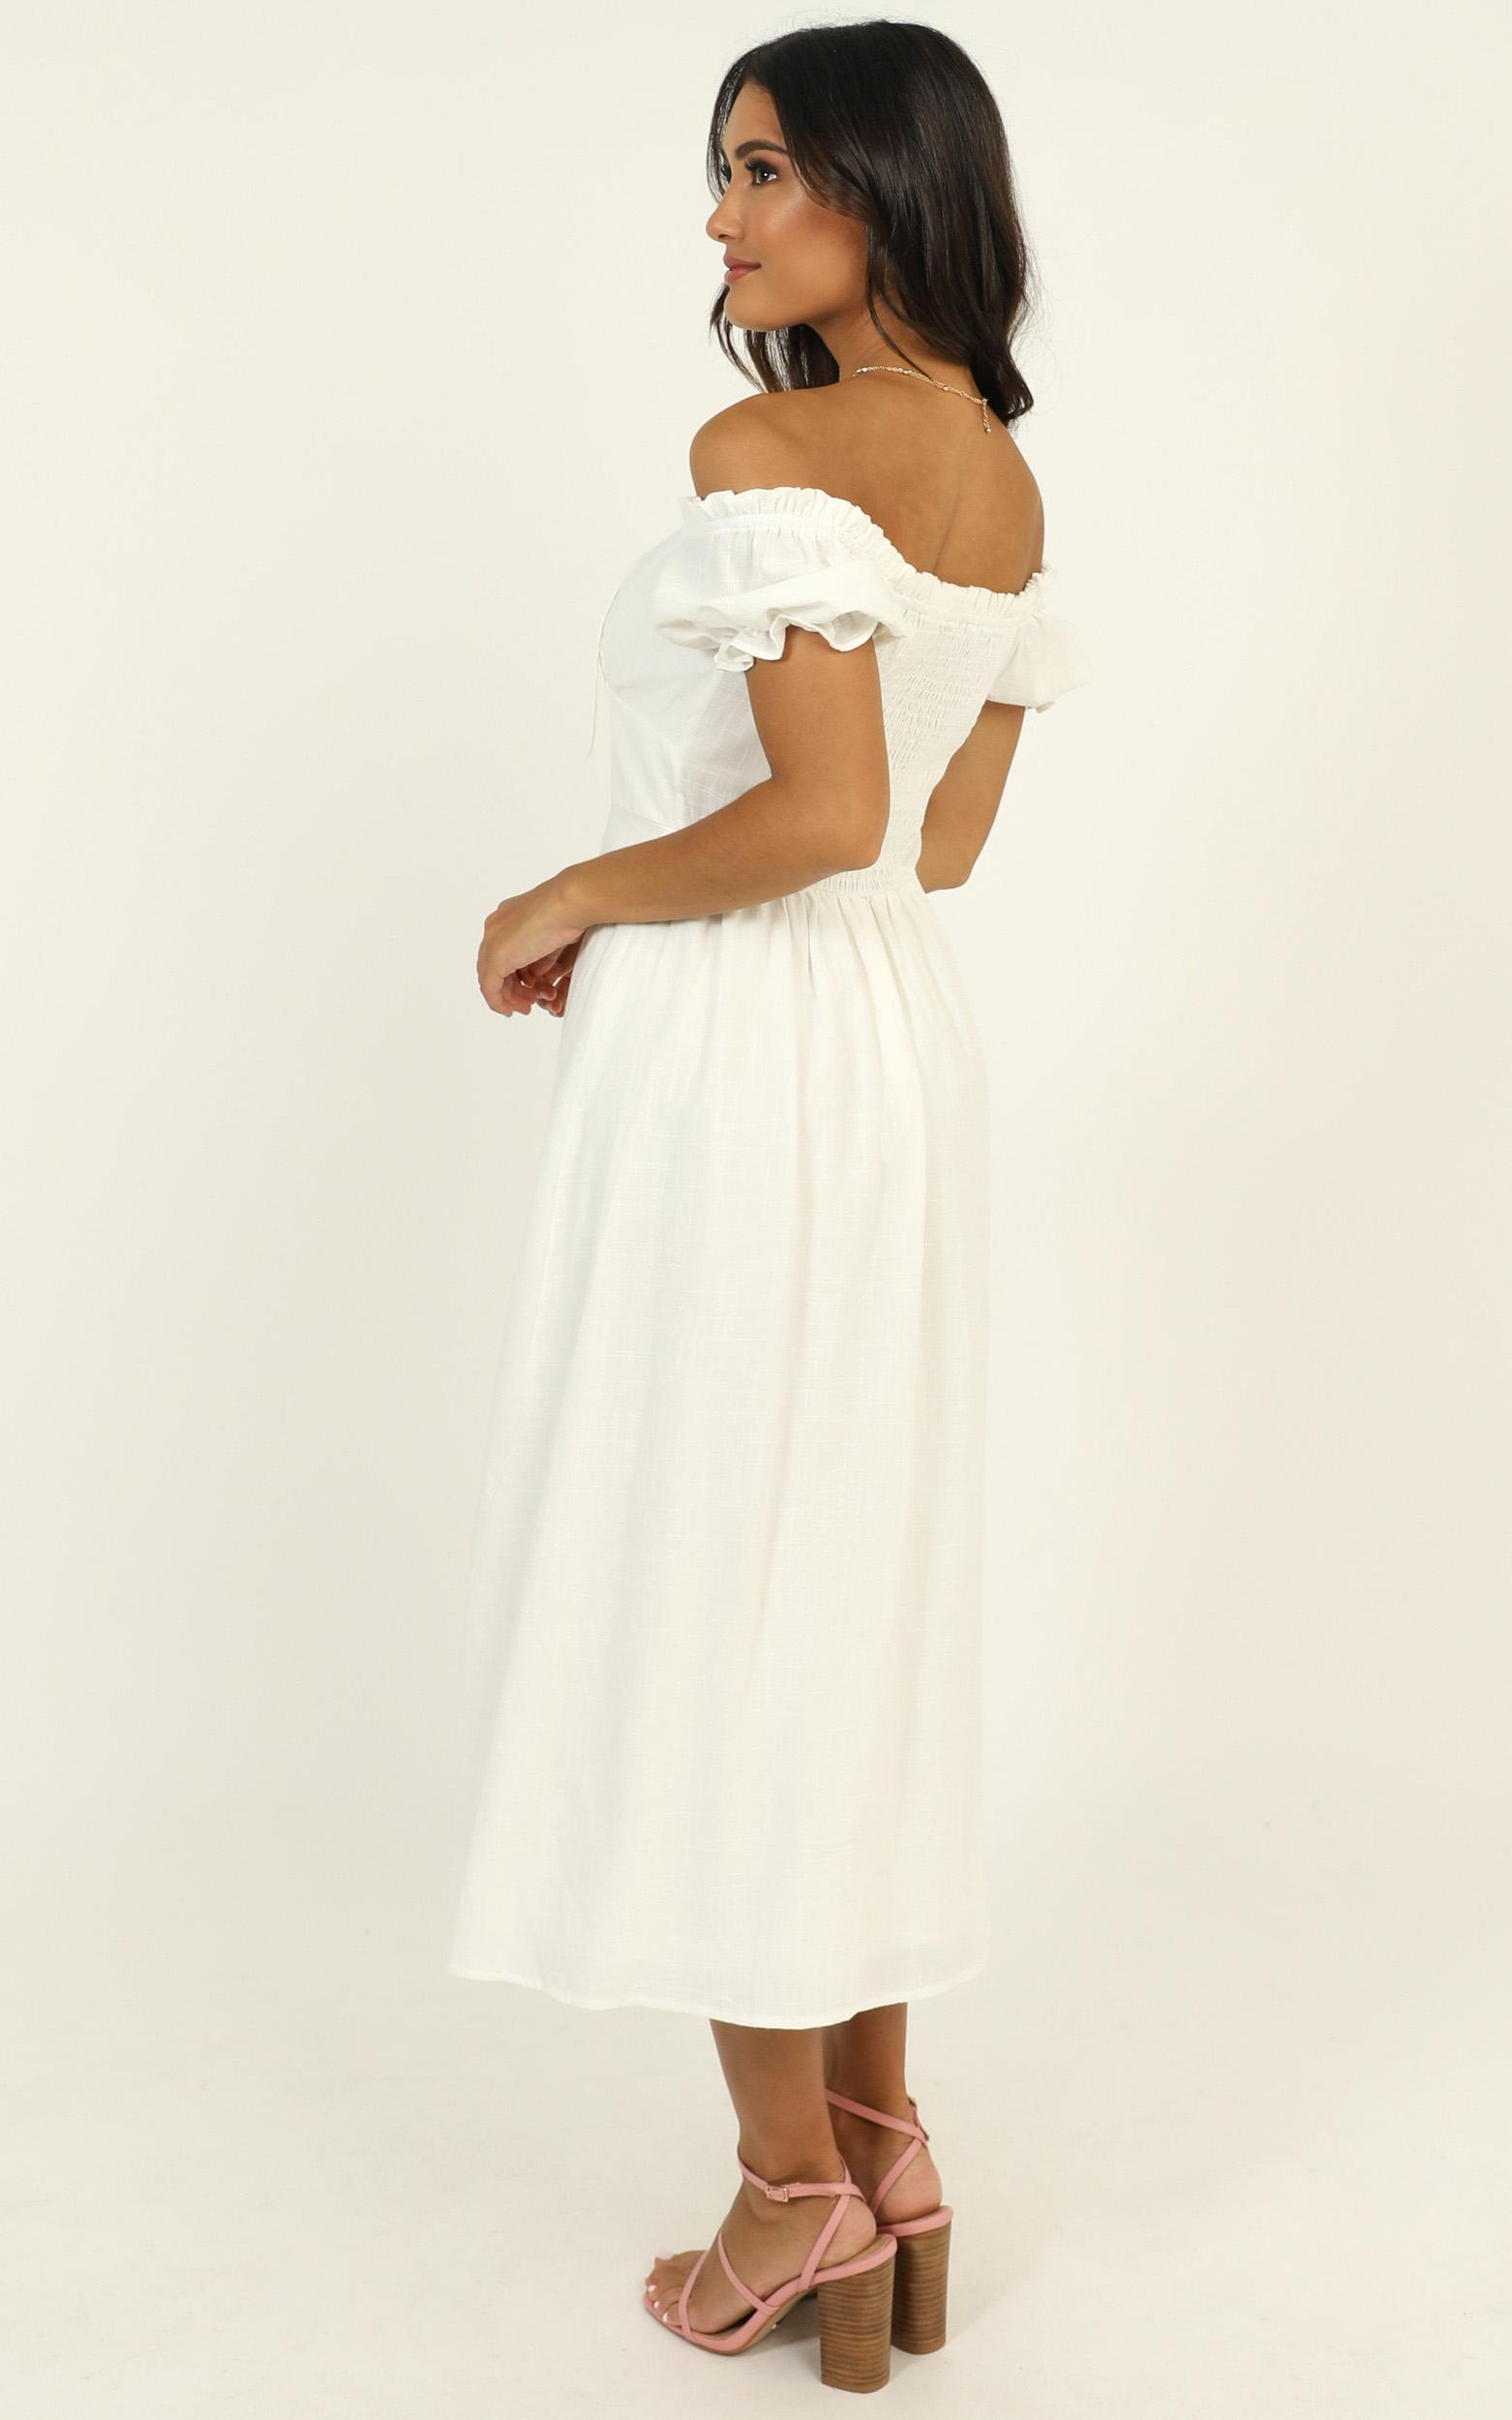 Beachside Sounds Dress in white - 14 (XL), White, hi-res image number null